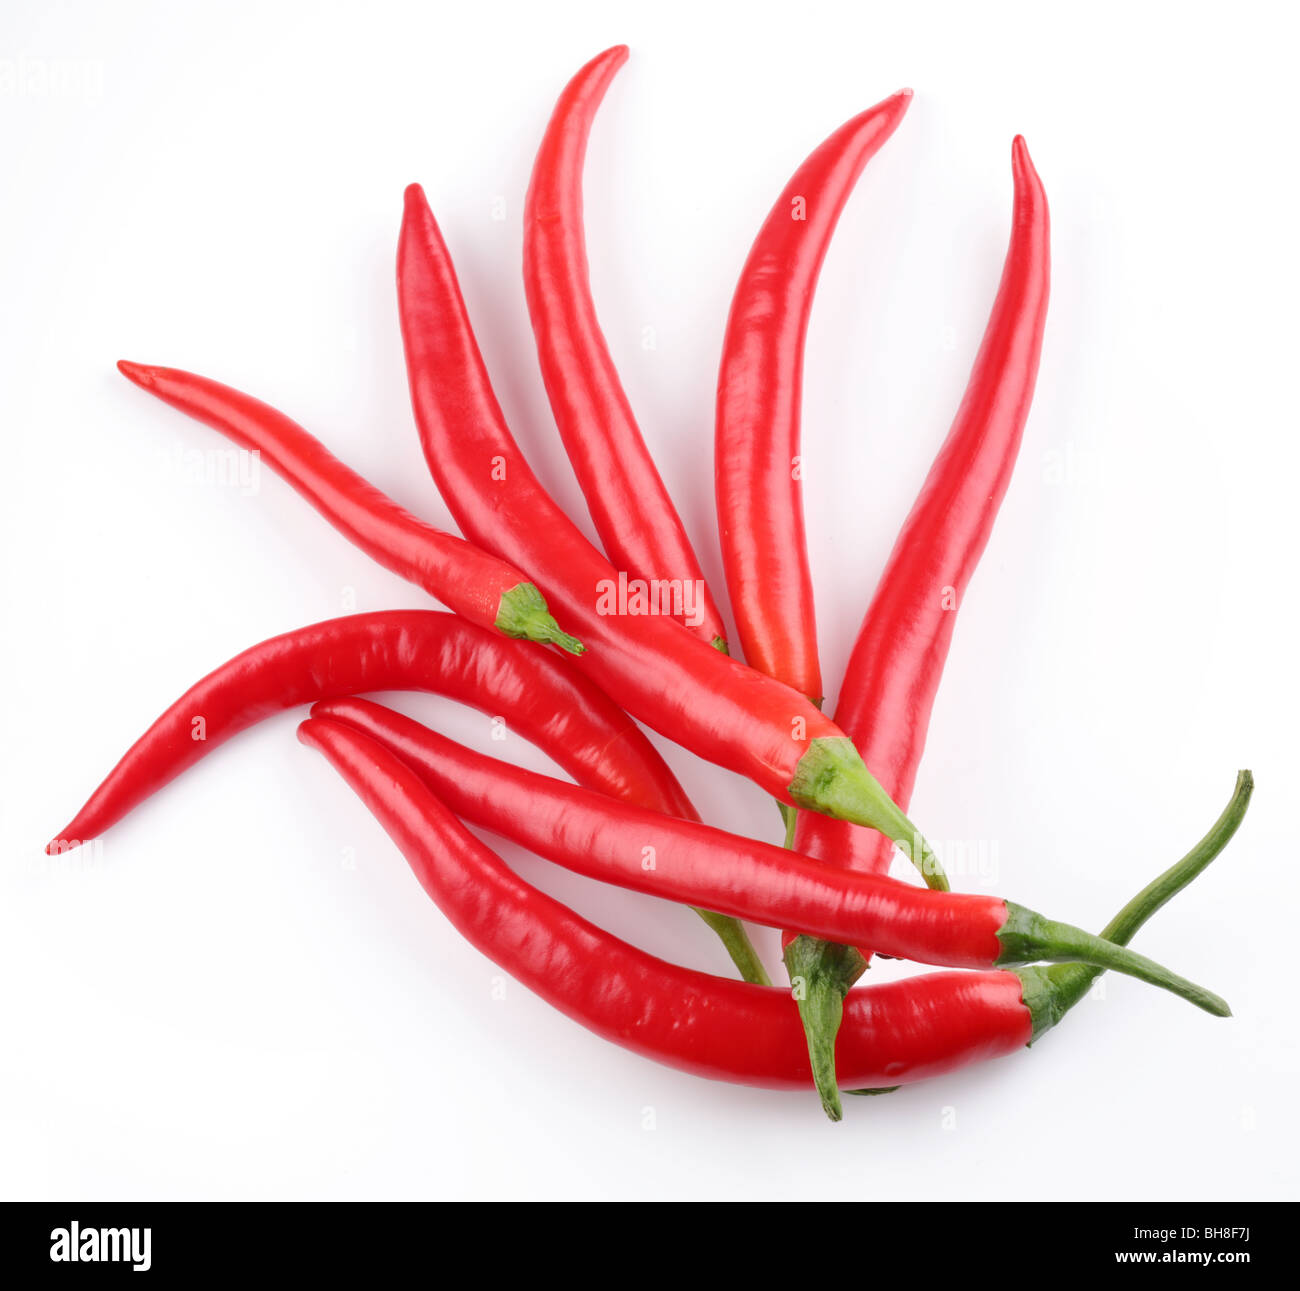 Pods spicy red chilli peppers on white background - Stock Image